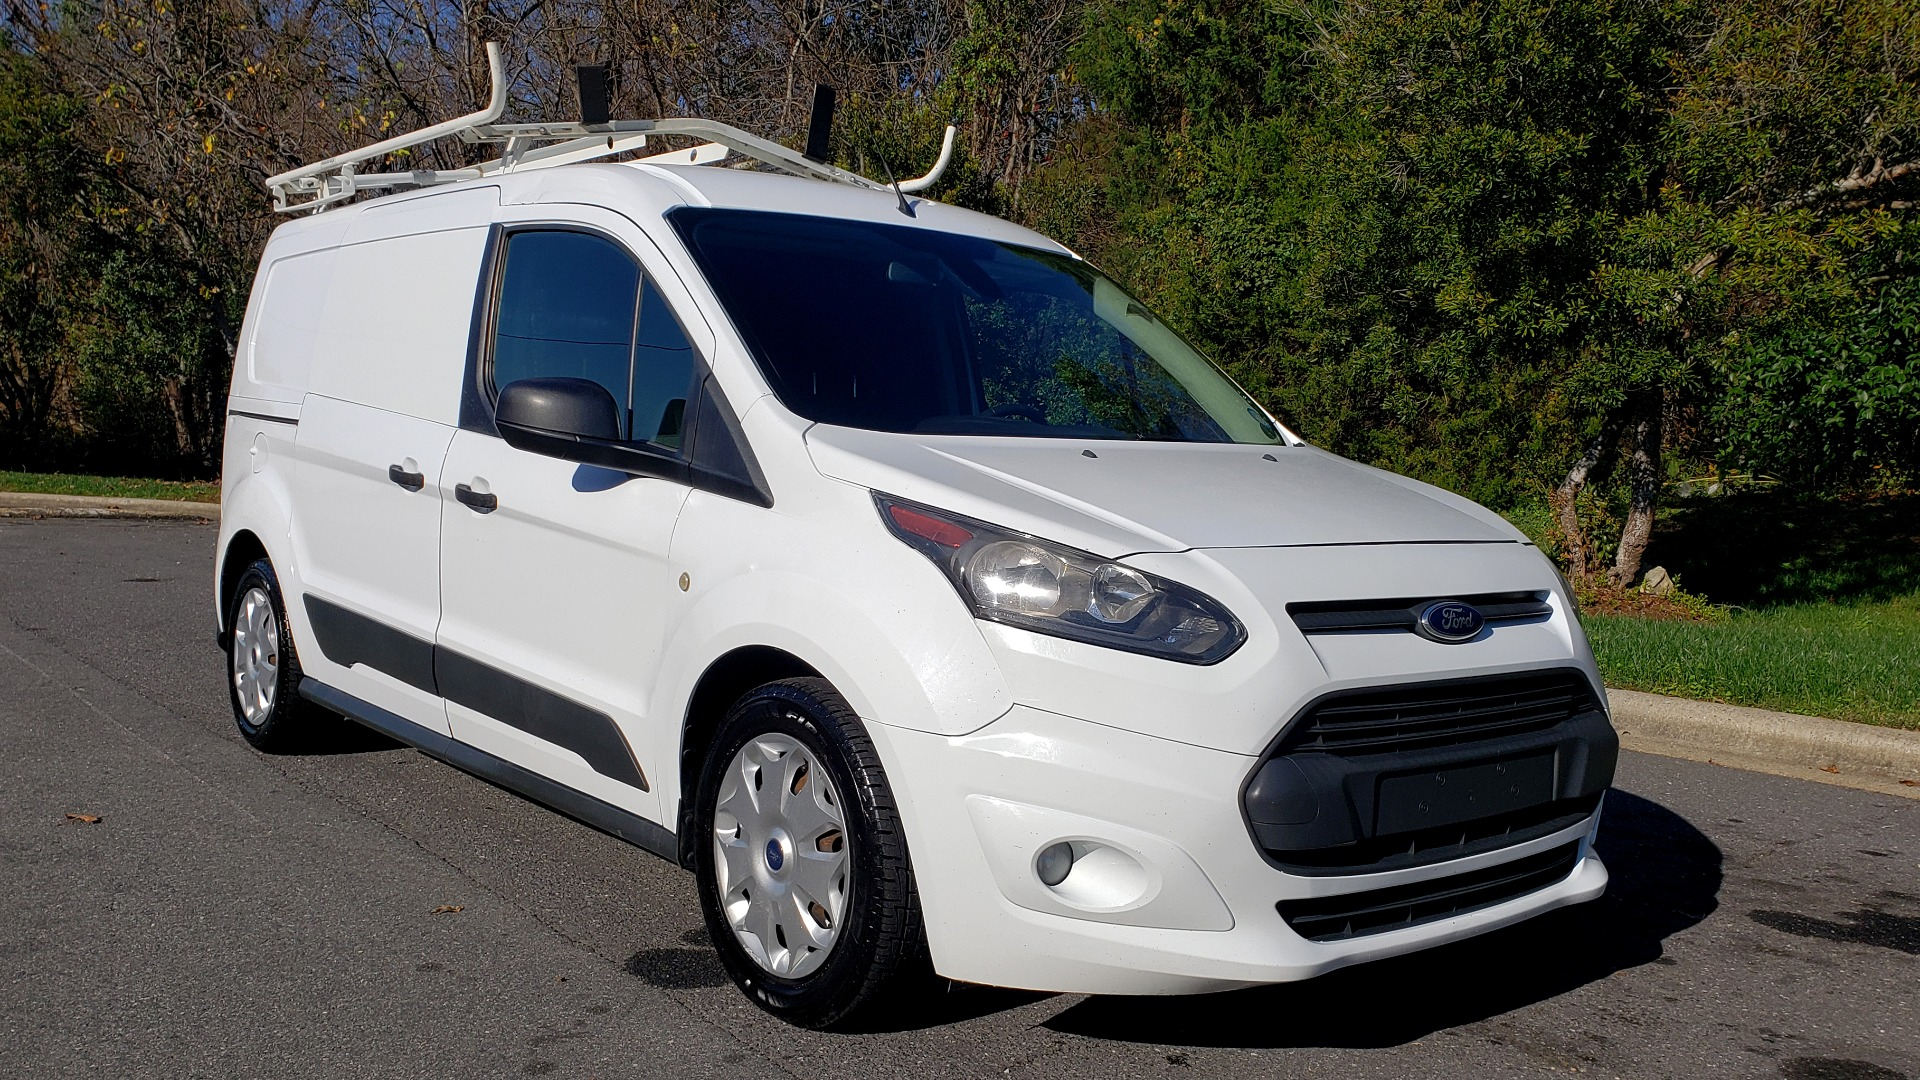 Used 2015 Ford TRANSIT CONNECT XLT CARGO VAN / 121-IN WB / 2.5L 4-CYL / AUTO / REARVIEW / WORK VAN for sale $10,995 at Formula Imports in Charlotte NC 28227 6